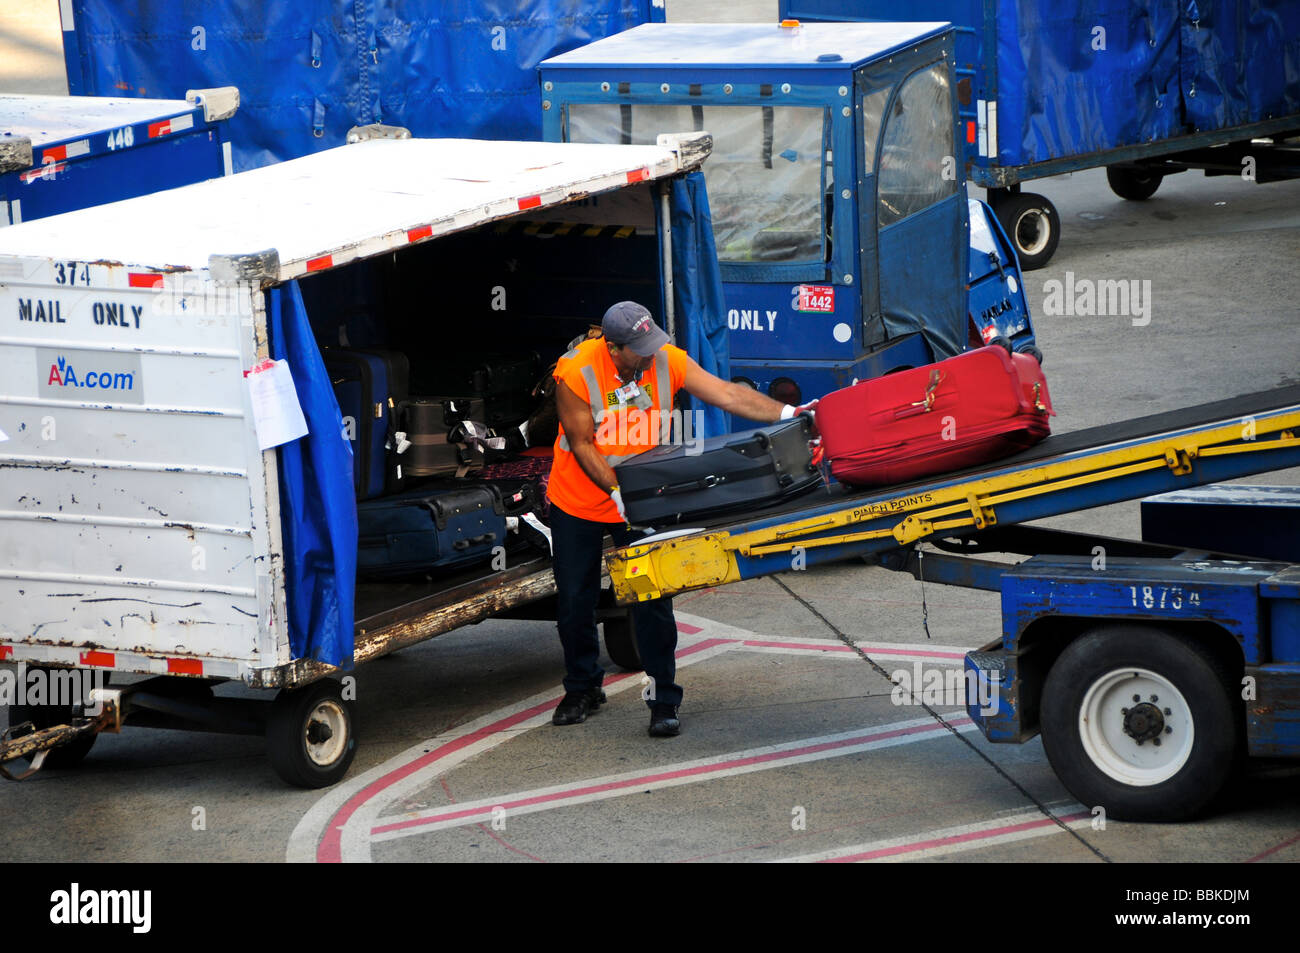 Airport baggage handler, Logan Airport, Boston, USA - Stock Image